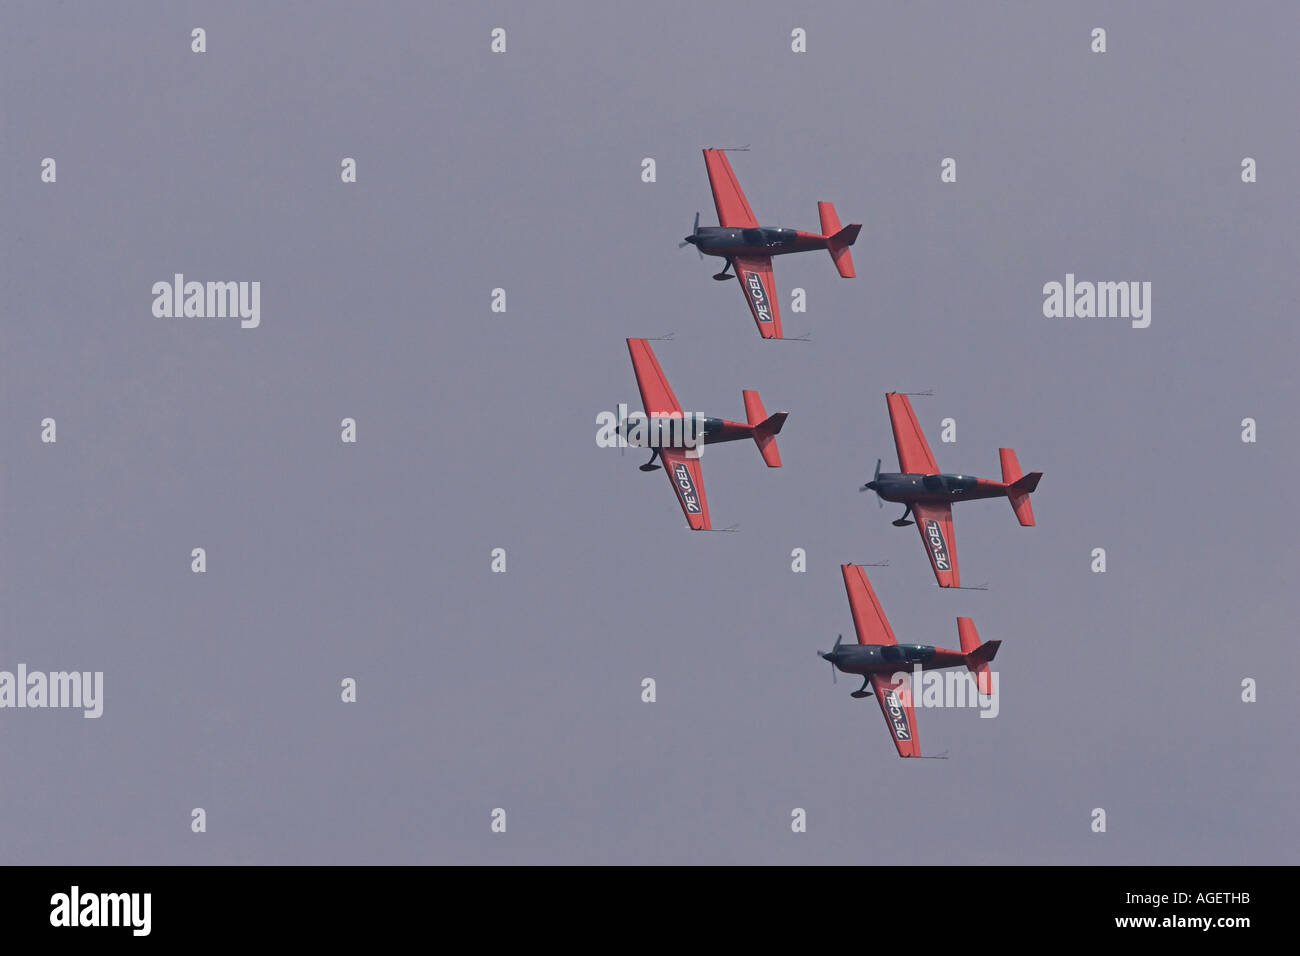 New display team excel blades - Stock Image